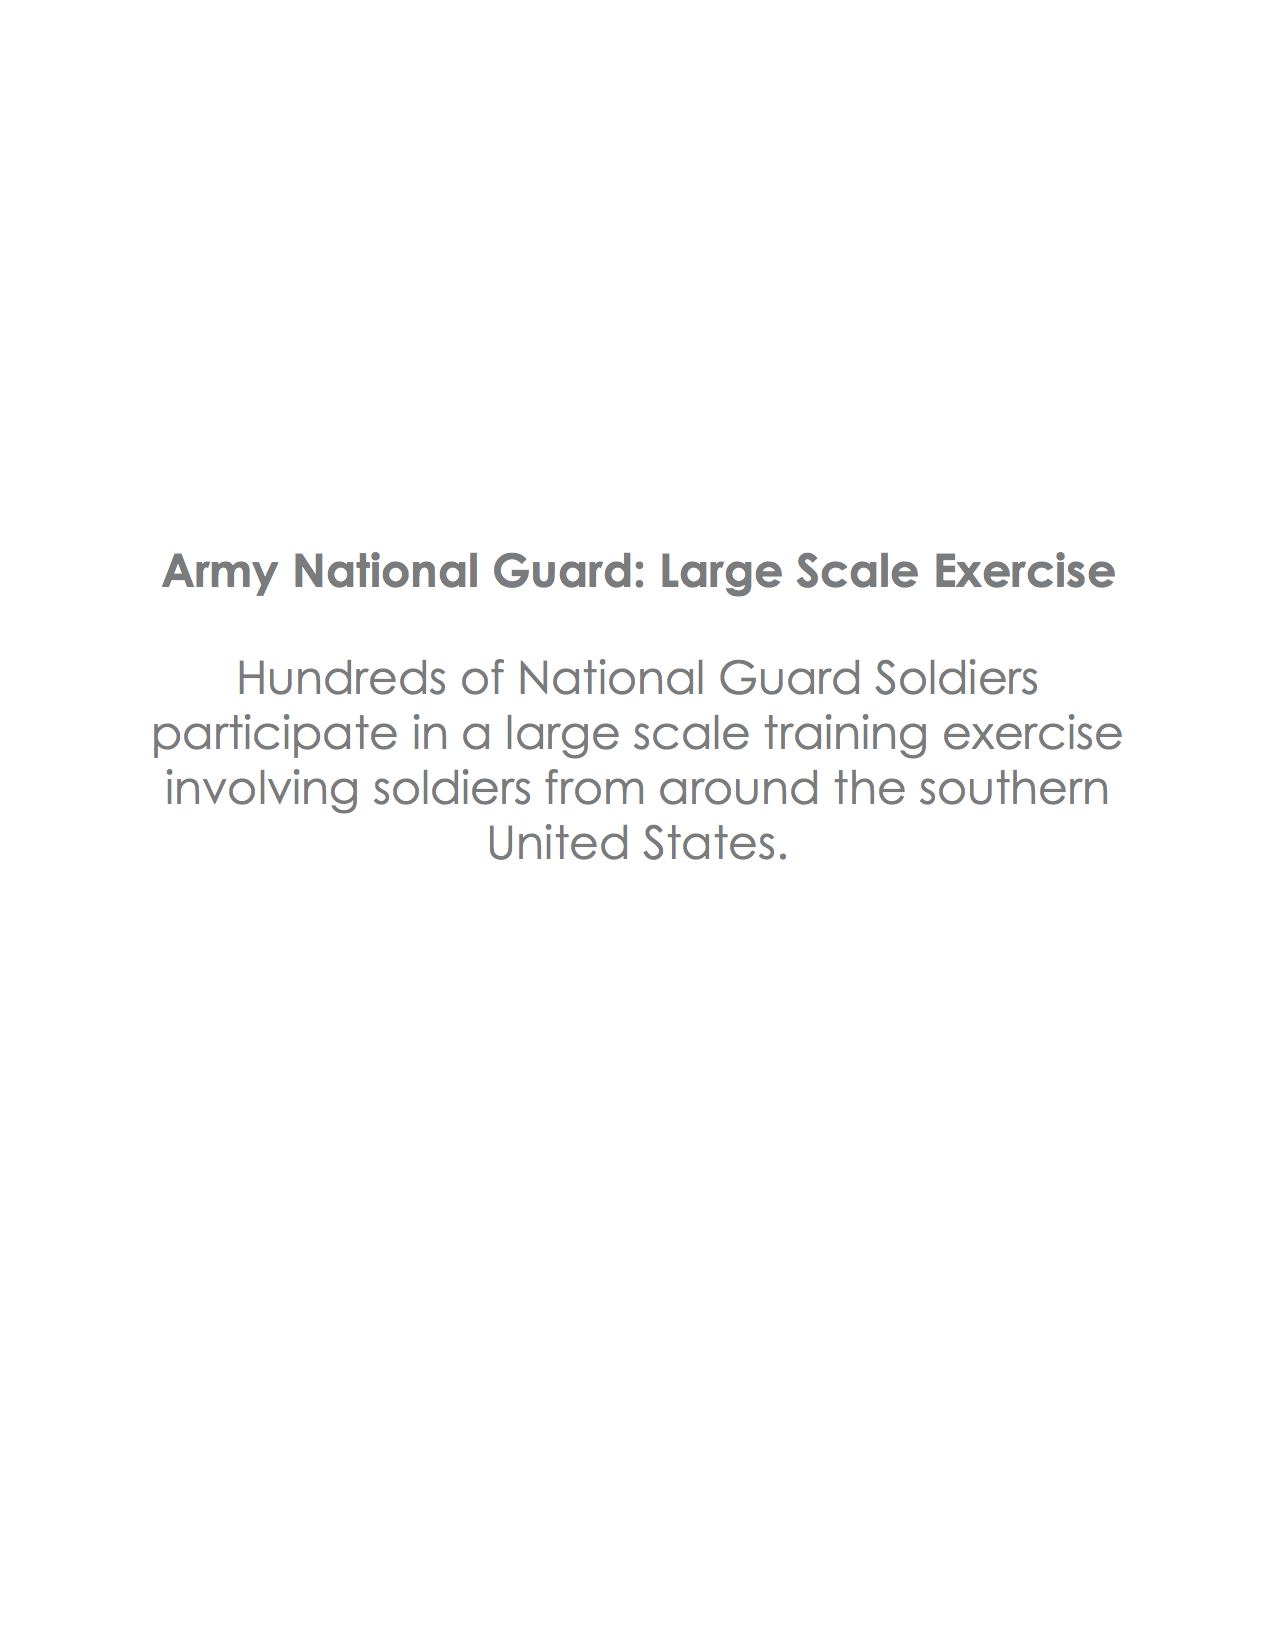 6_army_national_guard.jpg